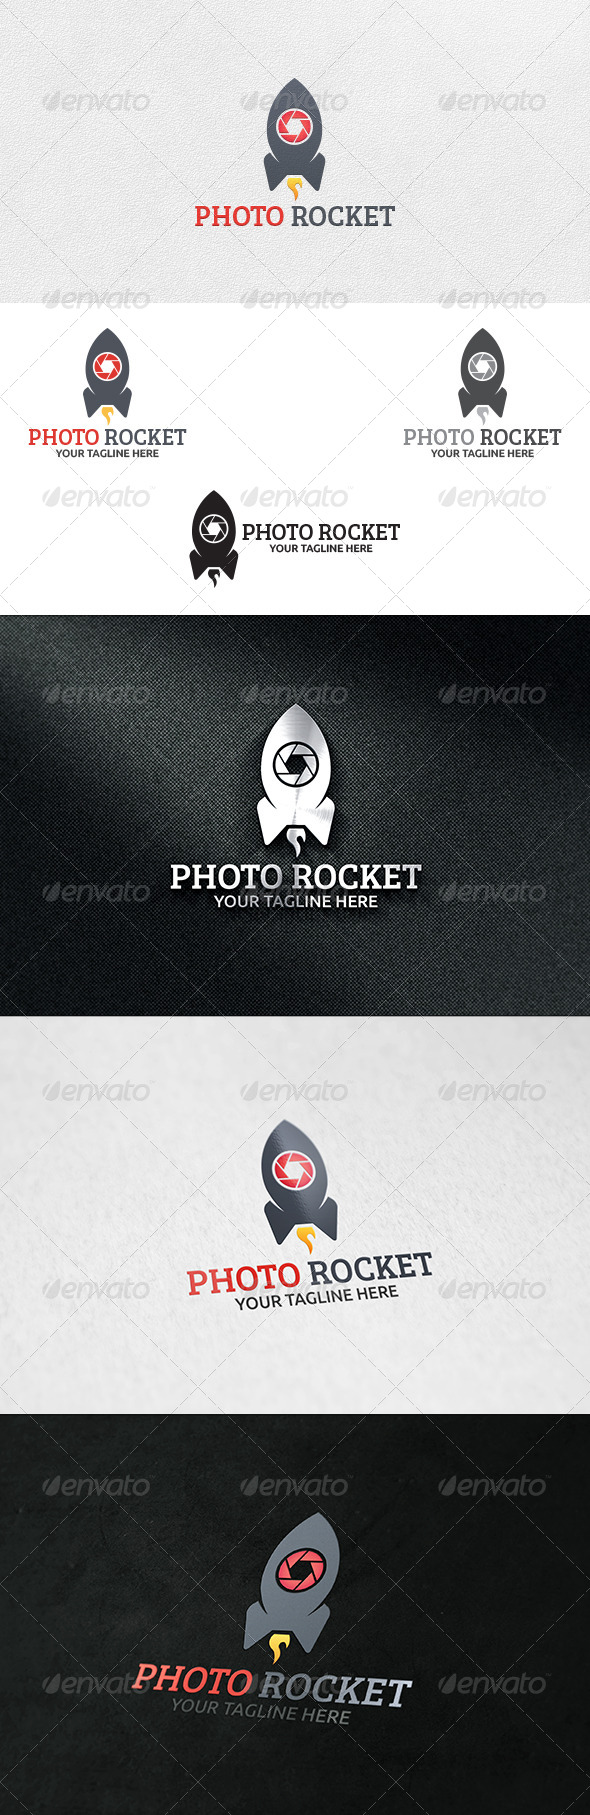 Photo Rocket - Logo Template - Objects Logo Templates